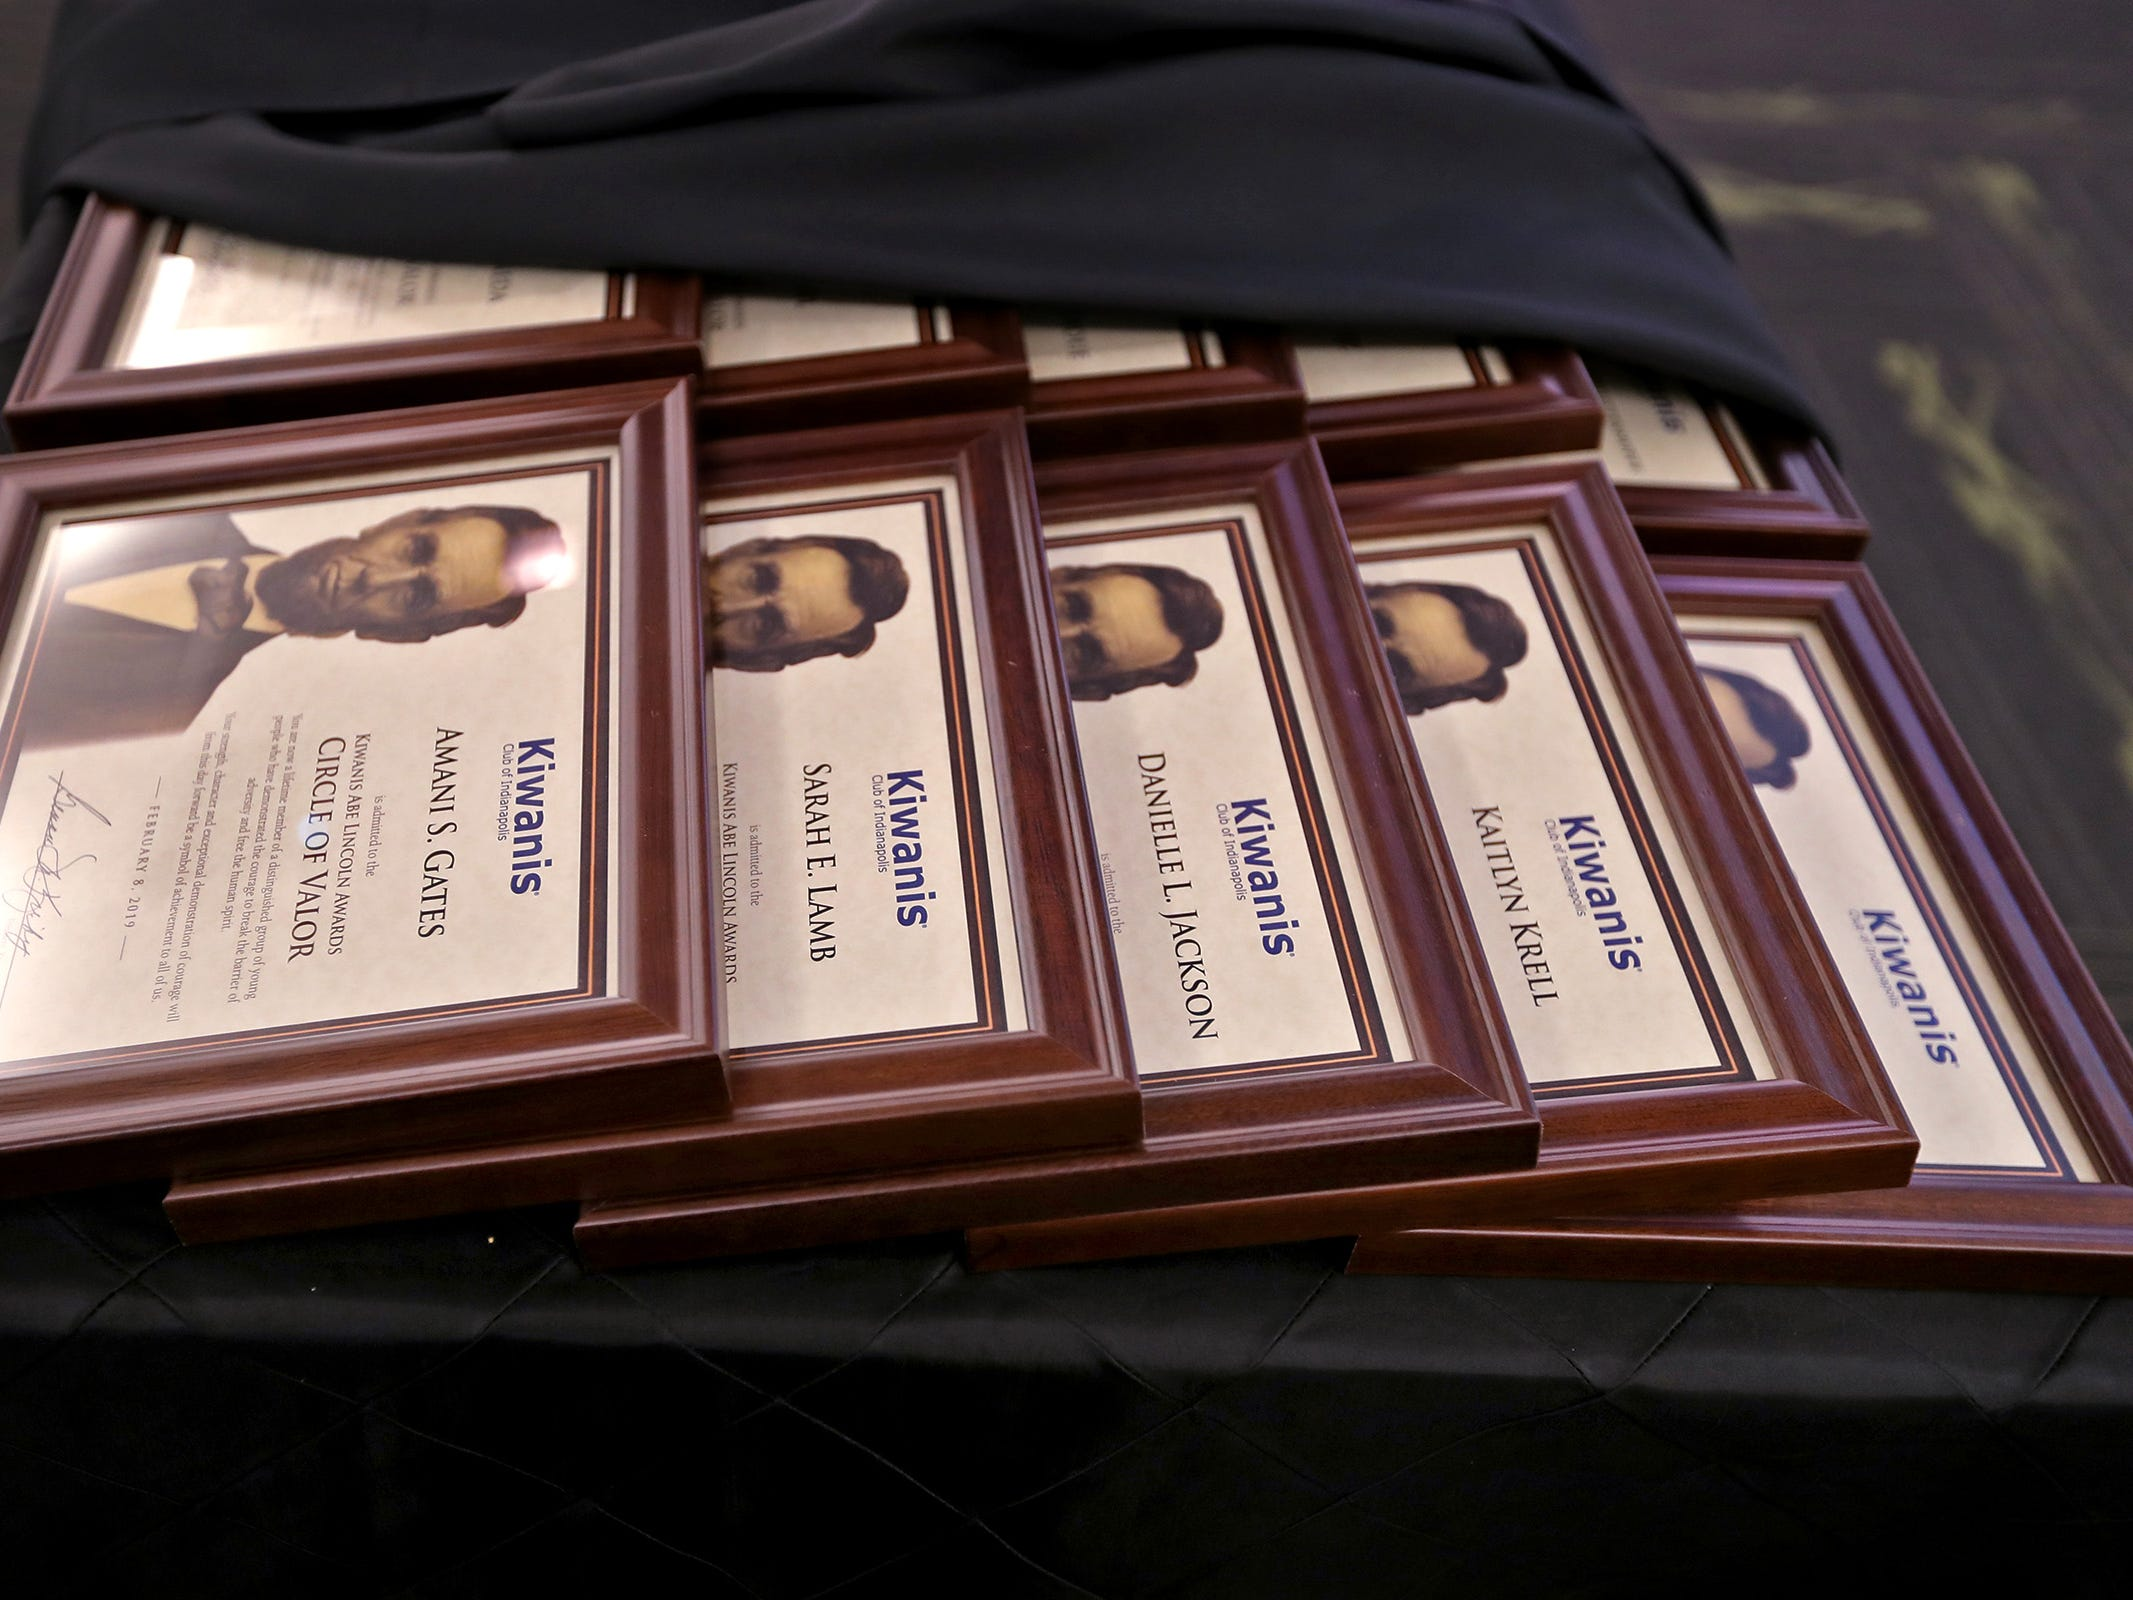 Awards are ready to be distributed at the 44th Annual Abe Lincoln Awards Program, Friday, Feb. 8, 2019. The Kiwanis Club of Indianapolis program was held at Ivy Tech Community College.  20 high school student were honored at the annual event which celebrates overcoming adversity in life to succeed.